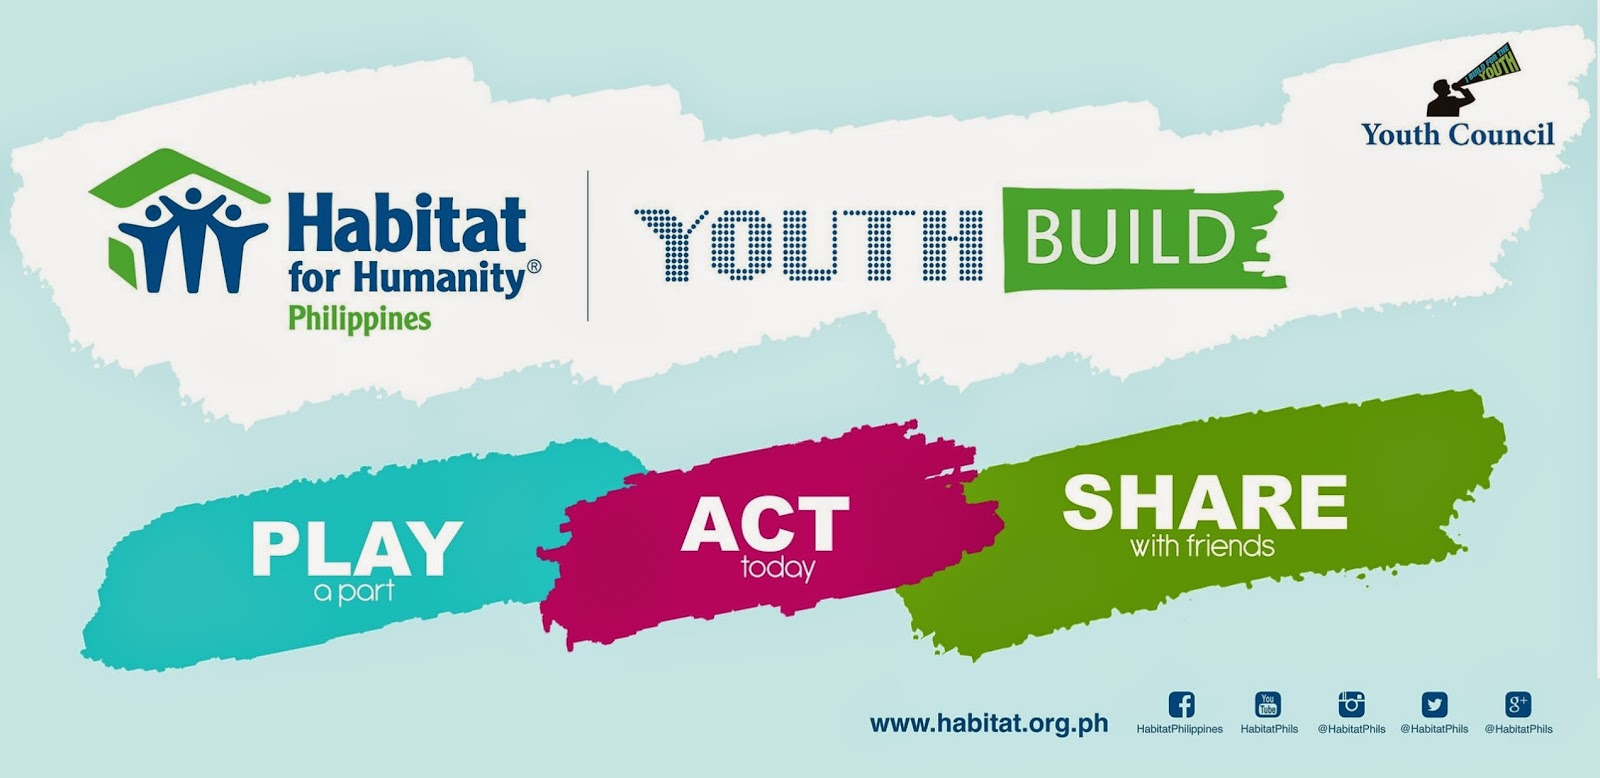 Habitat Youth Build 2015